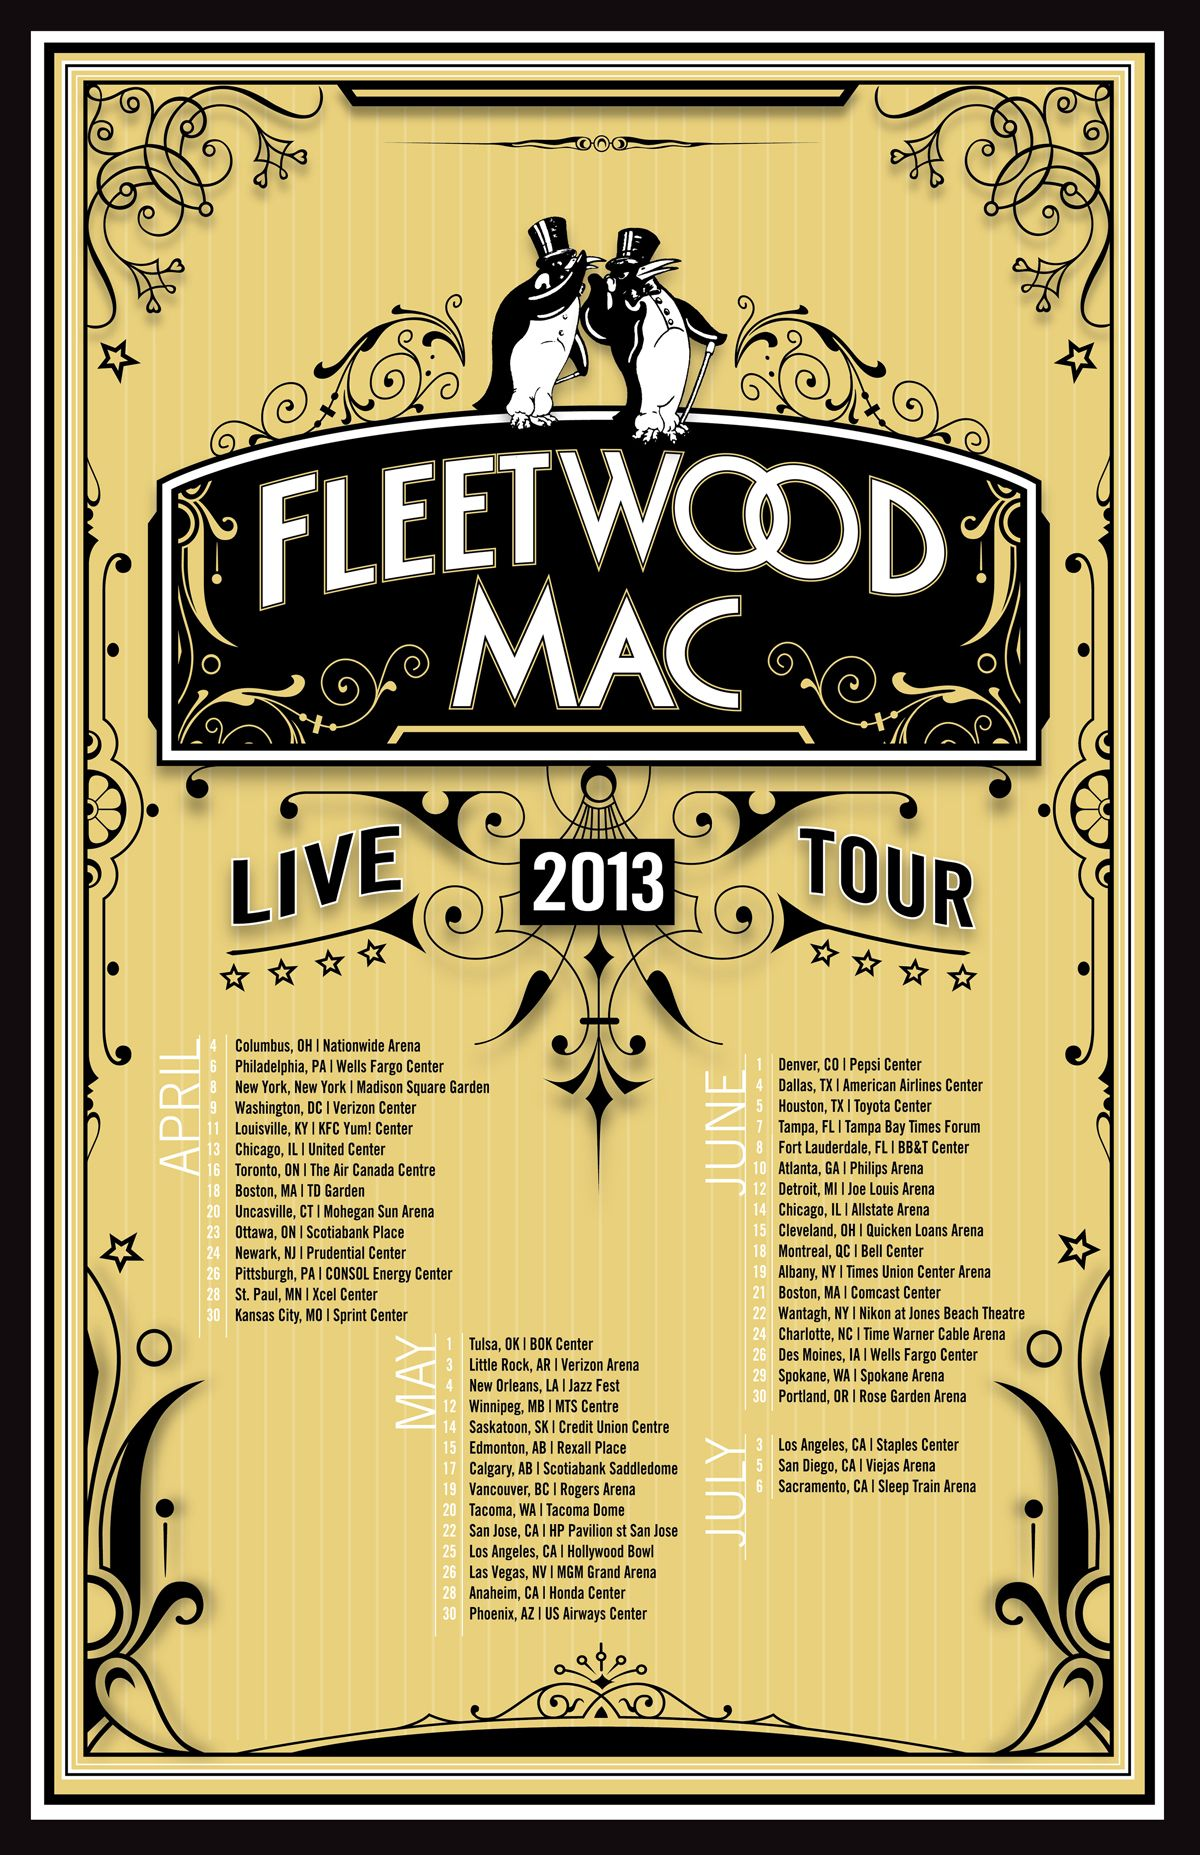 Poster design on mac - Fleetwood Mac Rumours Anniversary 2013 Tour Poster Design Contest Terry Hill Designs